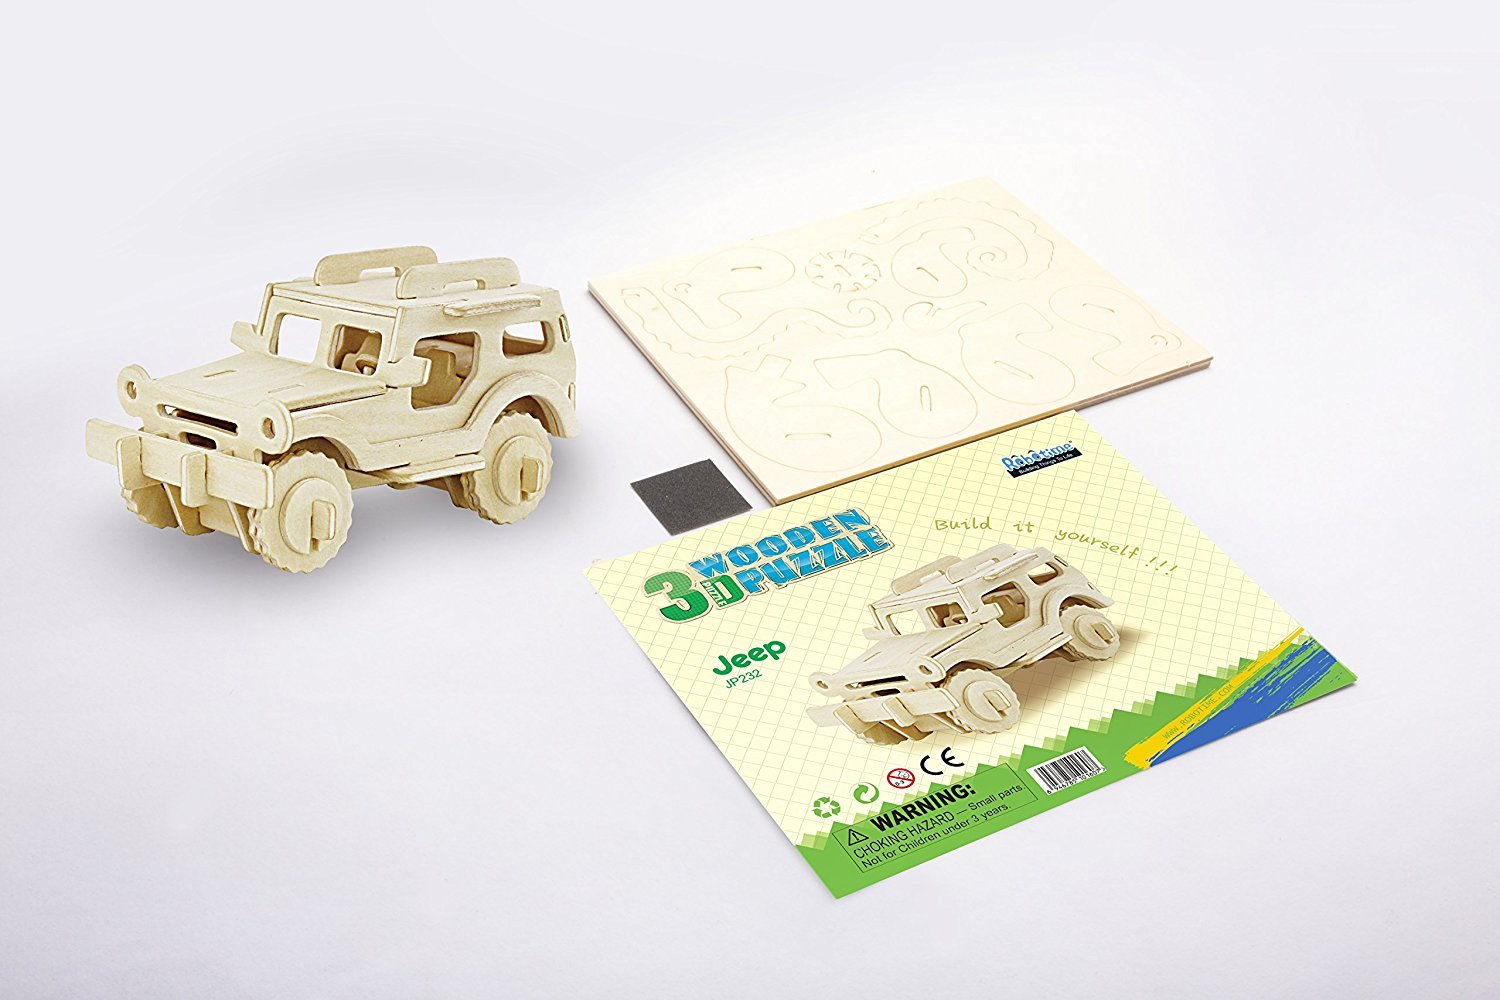 Ponte Collection 3d Wooden Model Toy Kit World Puzzle Build Car Kit